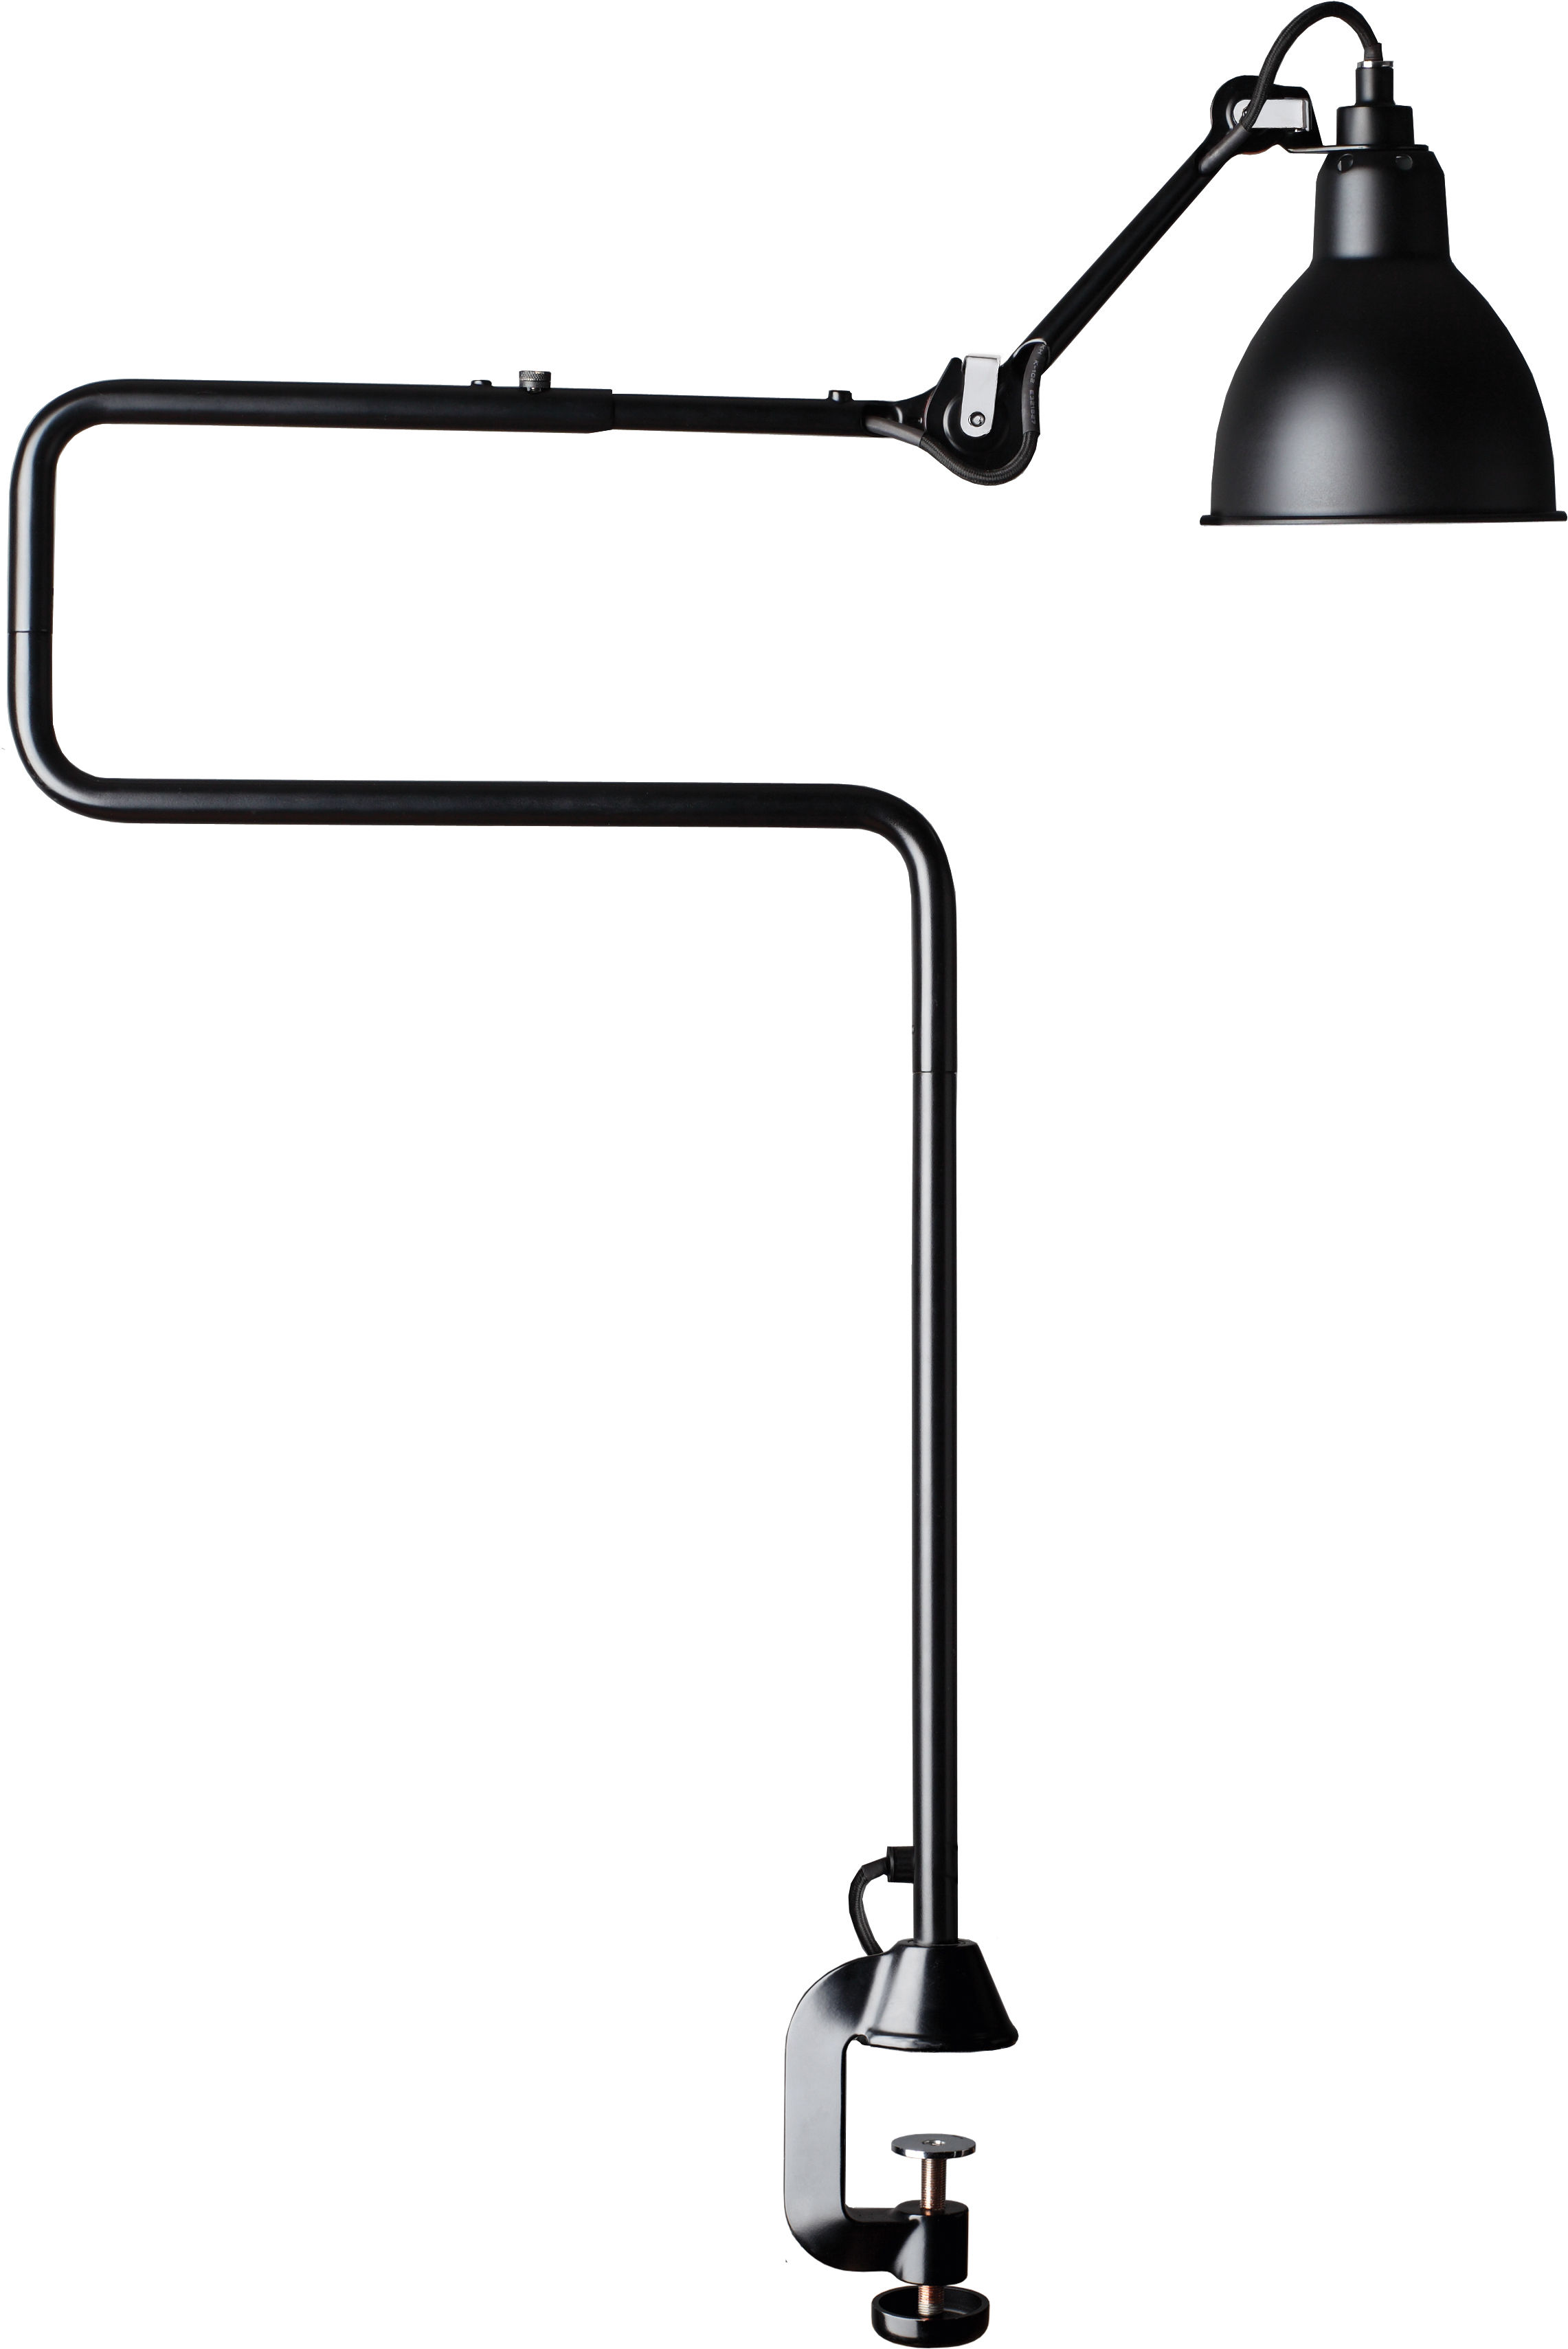 Lighting - Table Lamps - N°211-311 Table lamp - With clamp base by DCW éditions - Lampes Gras - Black diffuser / Black structure - Steel